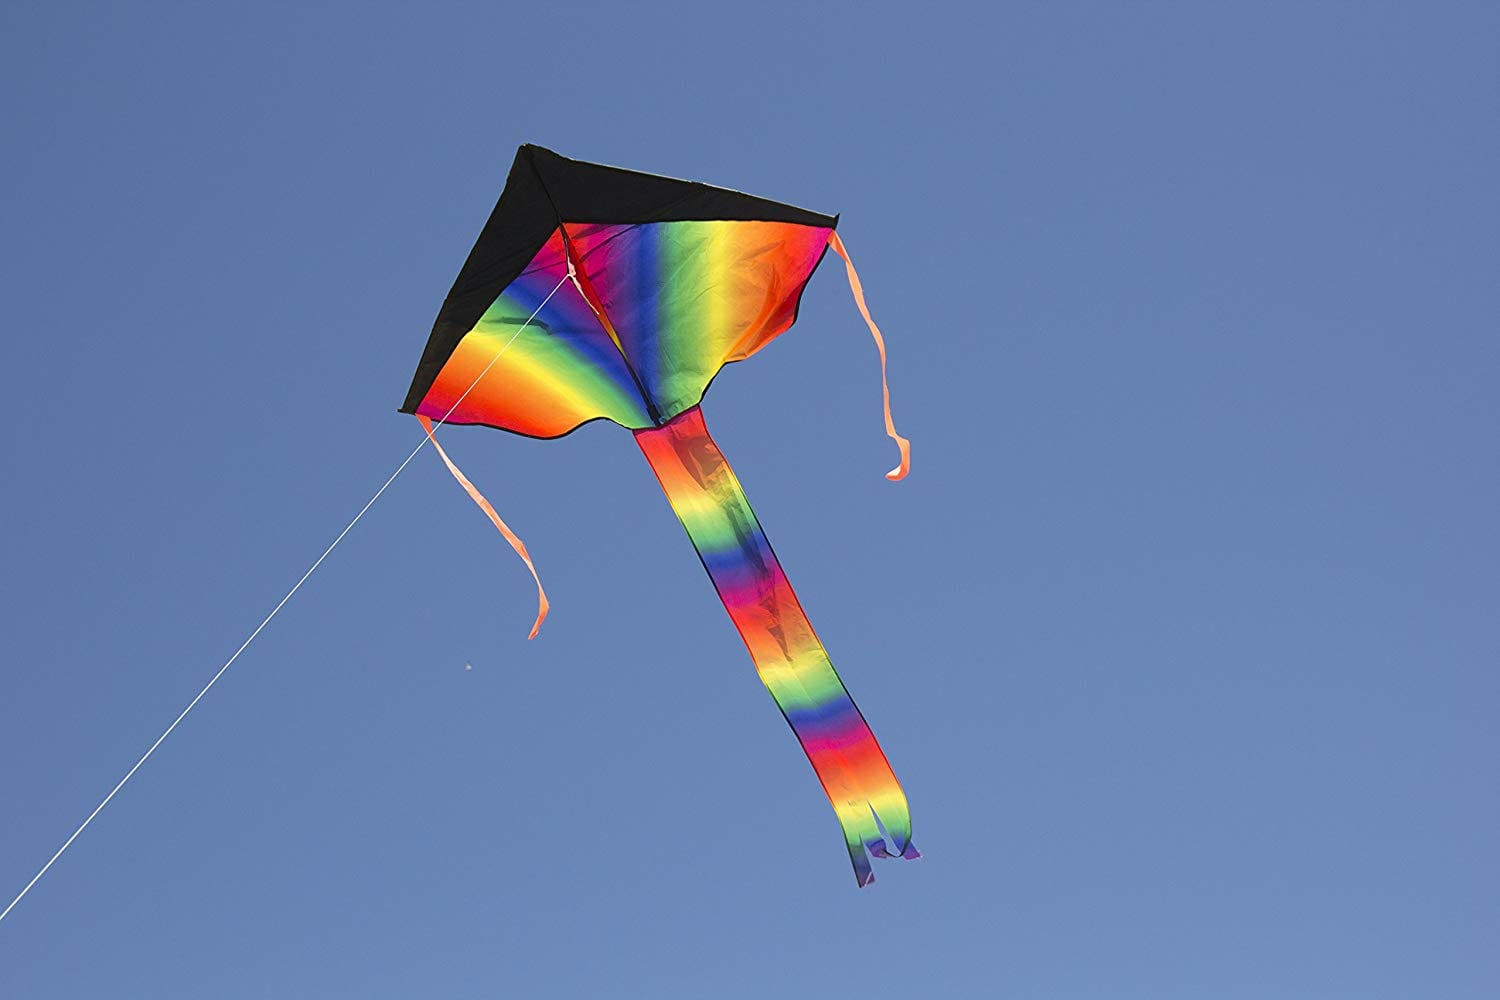 Delta Kite Single Line 42 X 26 Inches With 62 Inch